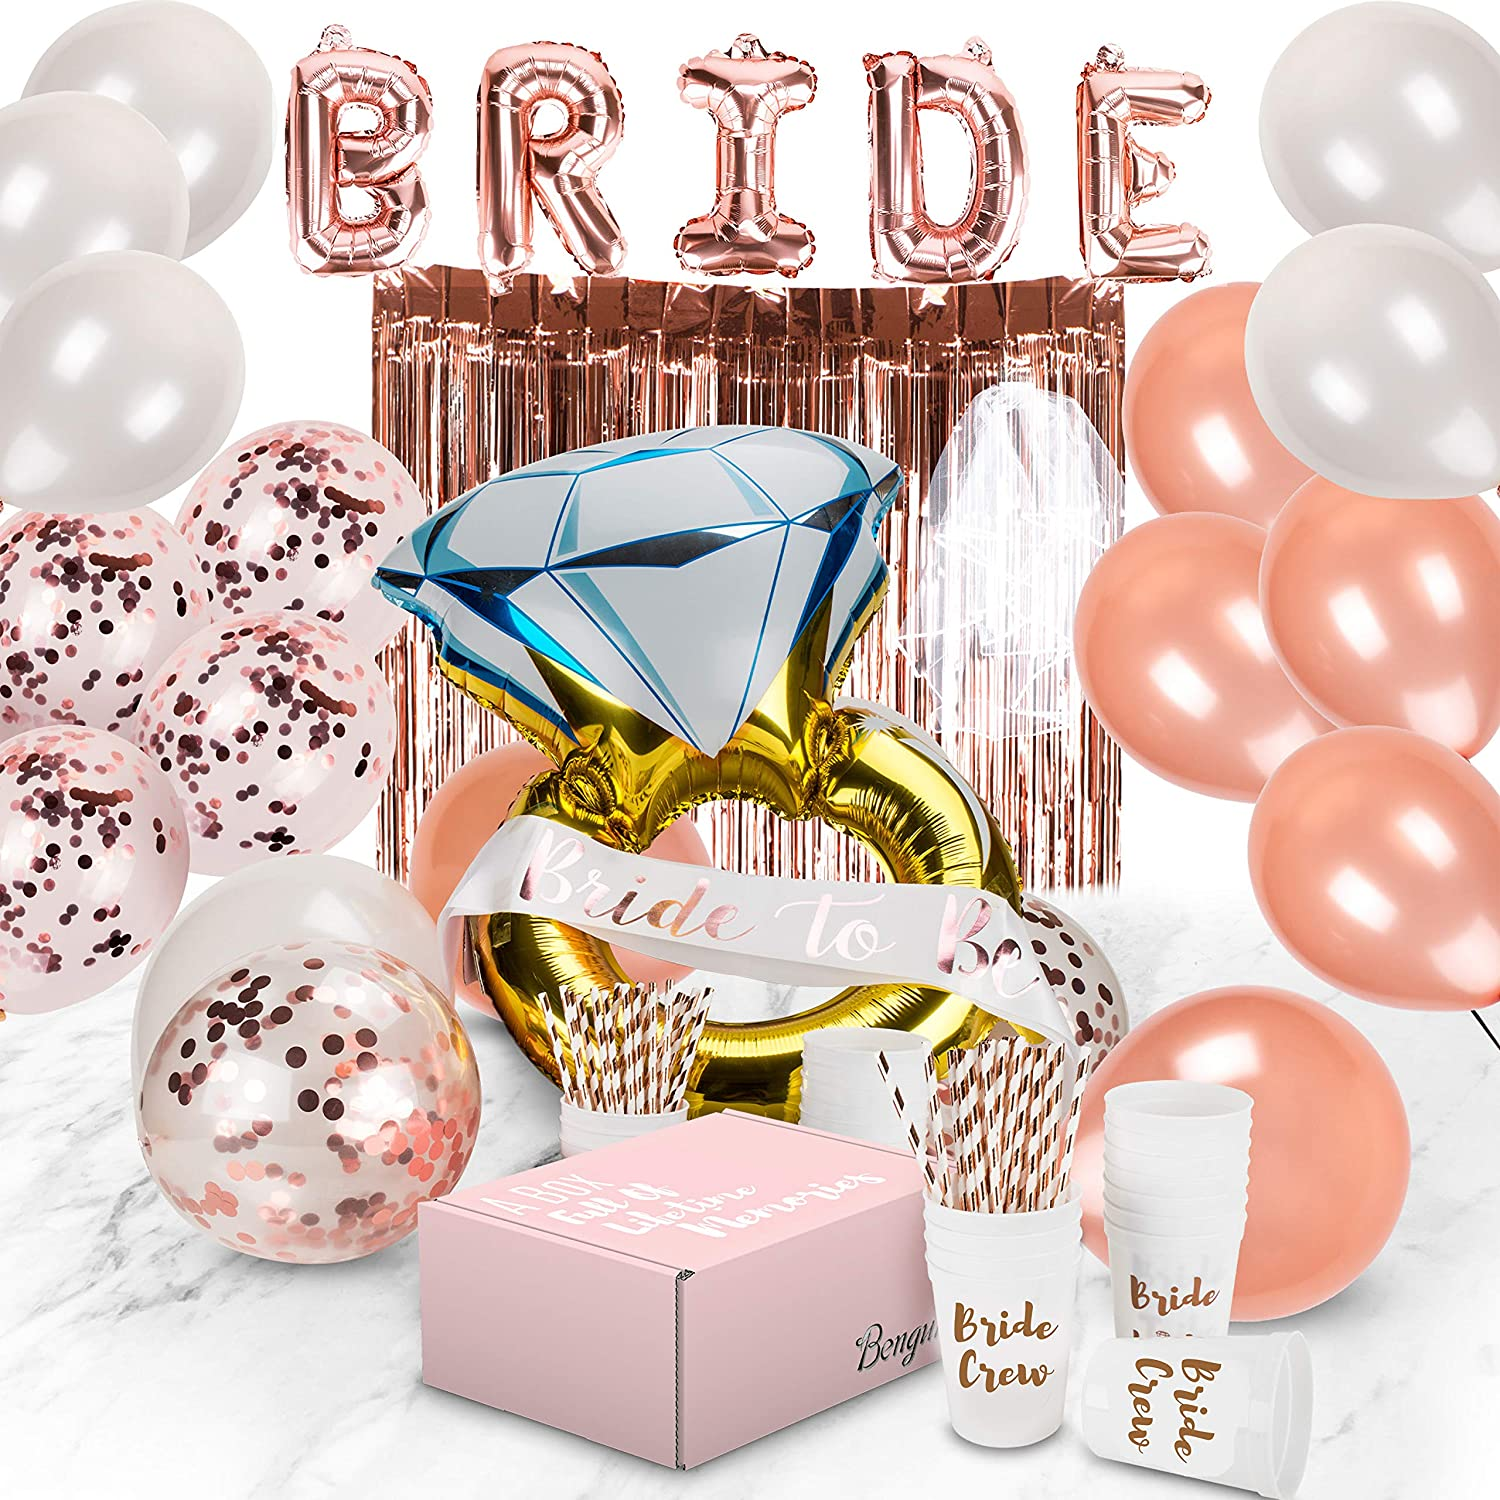 Bachelorette Party Decorations | Bridal Shower Supplies Kit - Bride To Be Sash, Cups, Straws, Veil, Banner, Balloons, Rose Gold Curtains & Decor Accessories